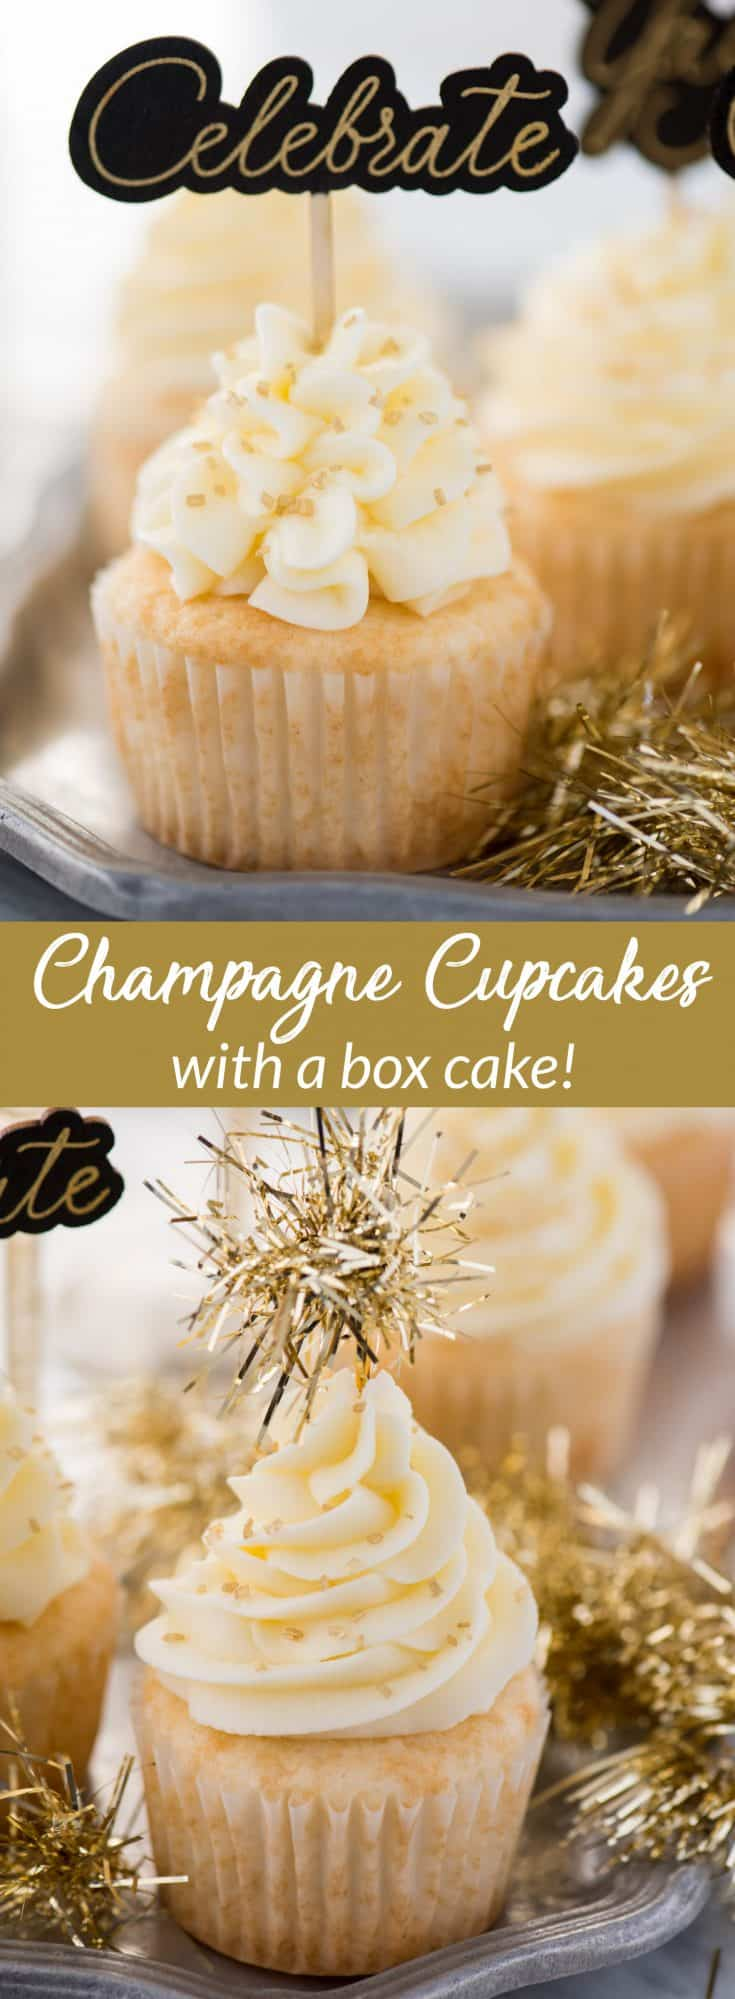 This easy champagne cupcake recipe with champagne frosting is a New Year's Eve dessert you won't want to miss! How to make champagne cupcakes using a box cake.